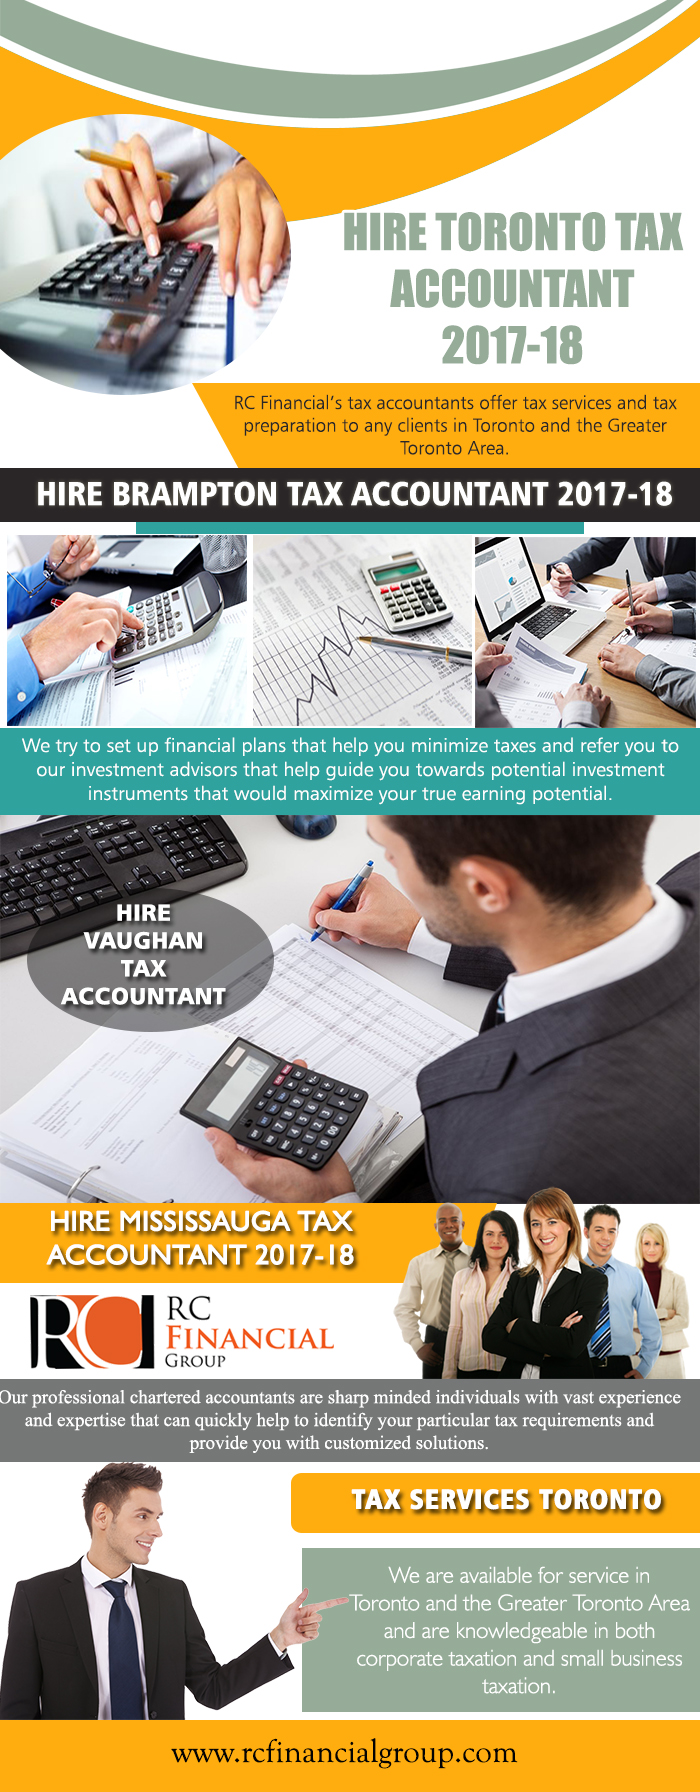 Hire Toronto Tax Accountant 2017-18